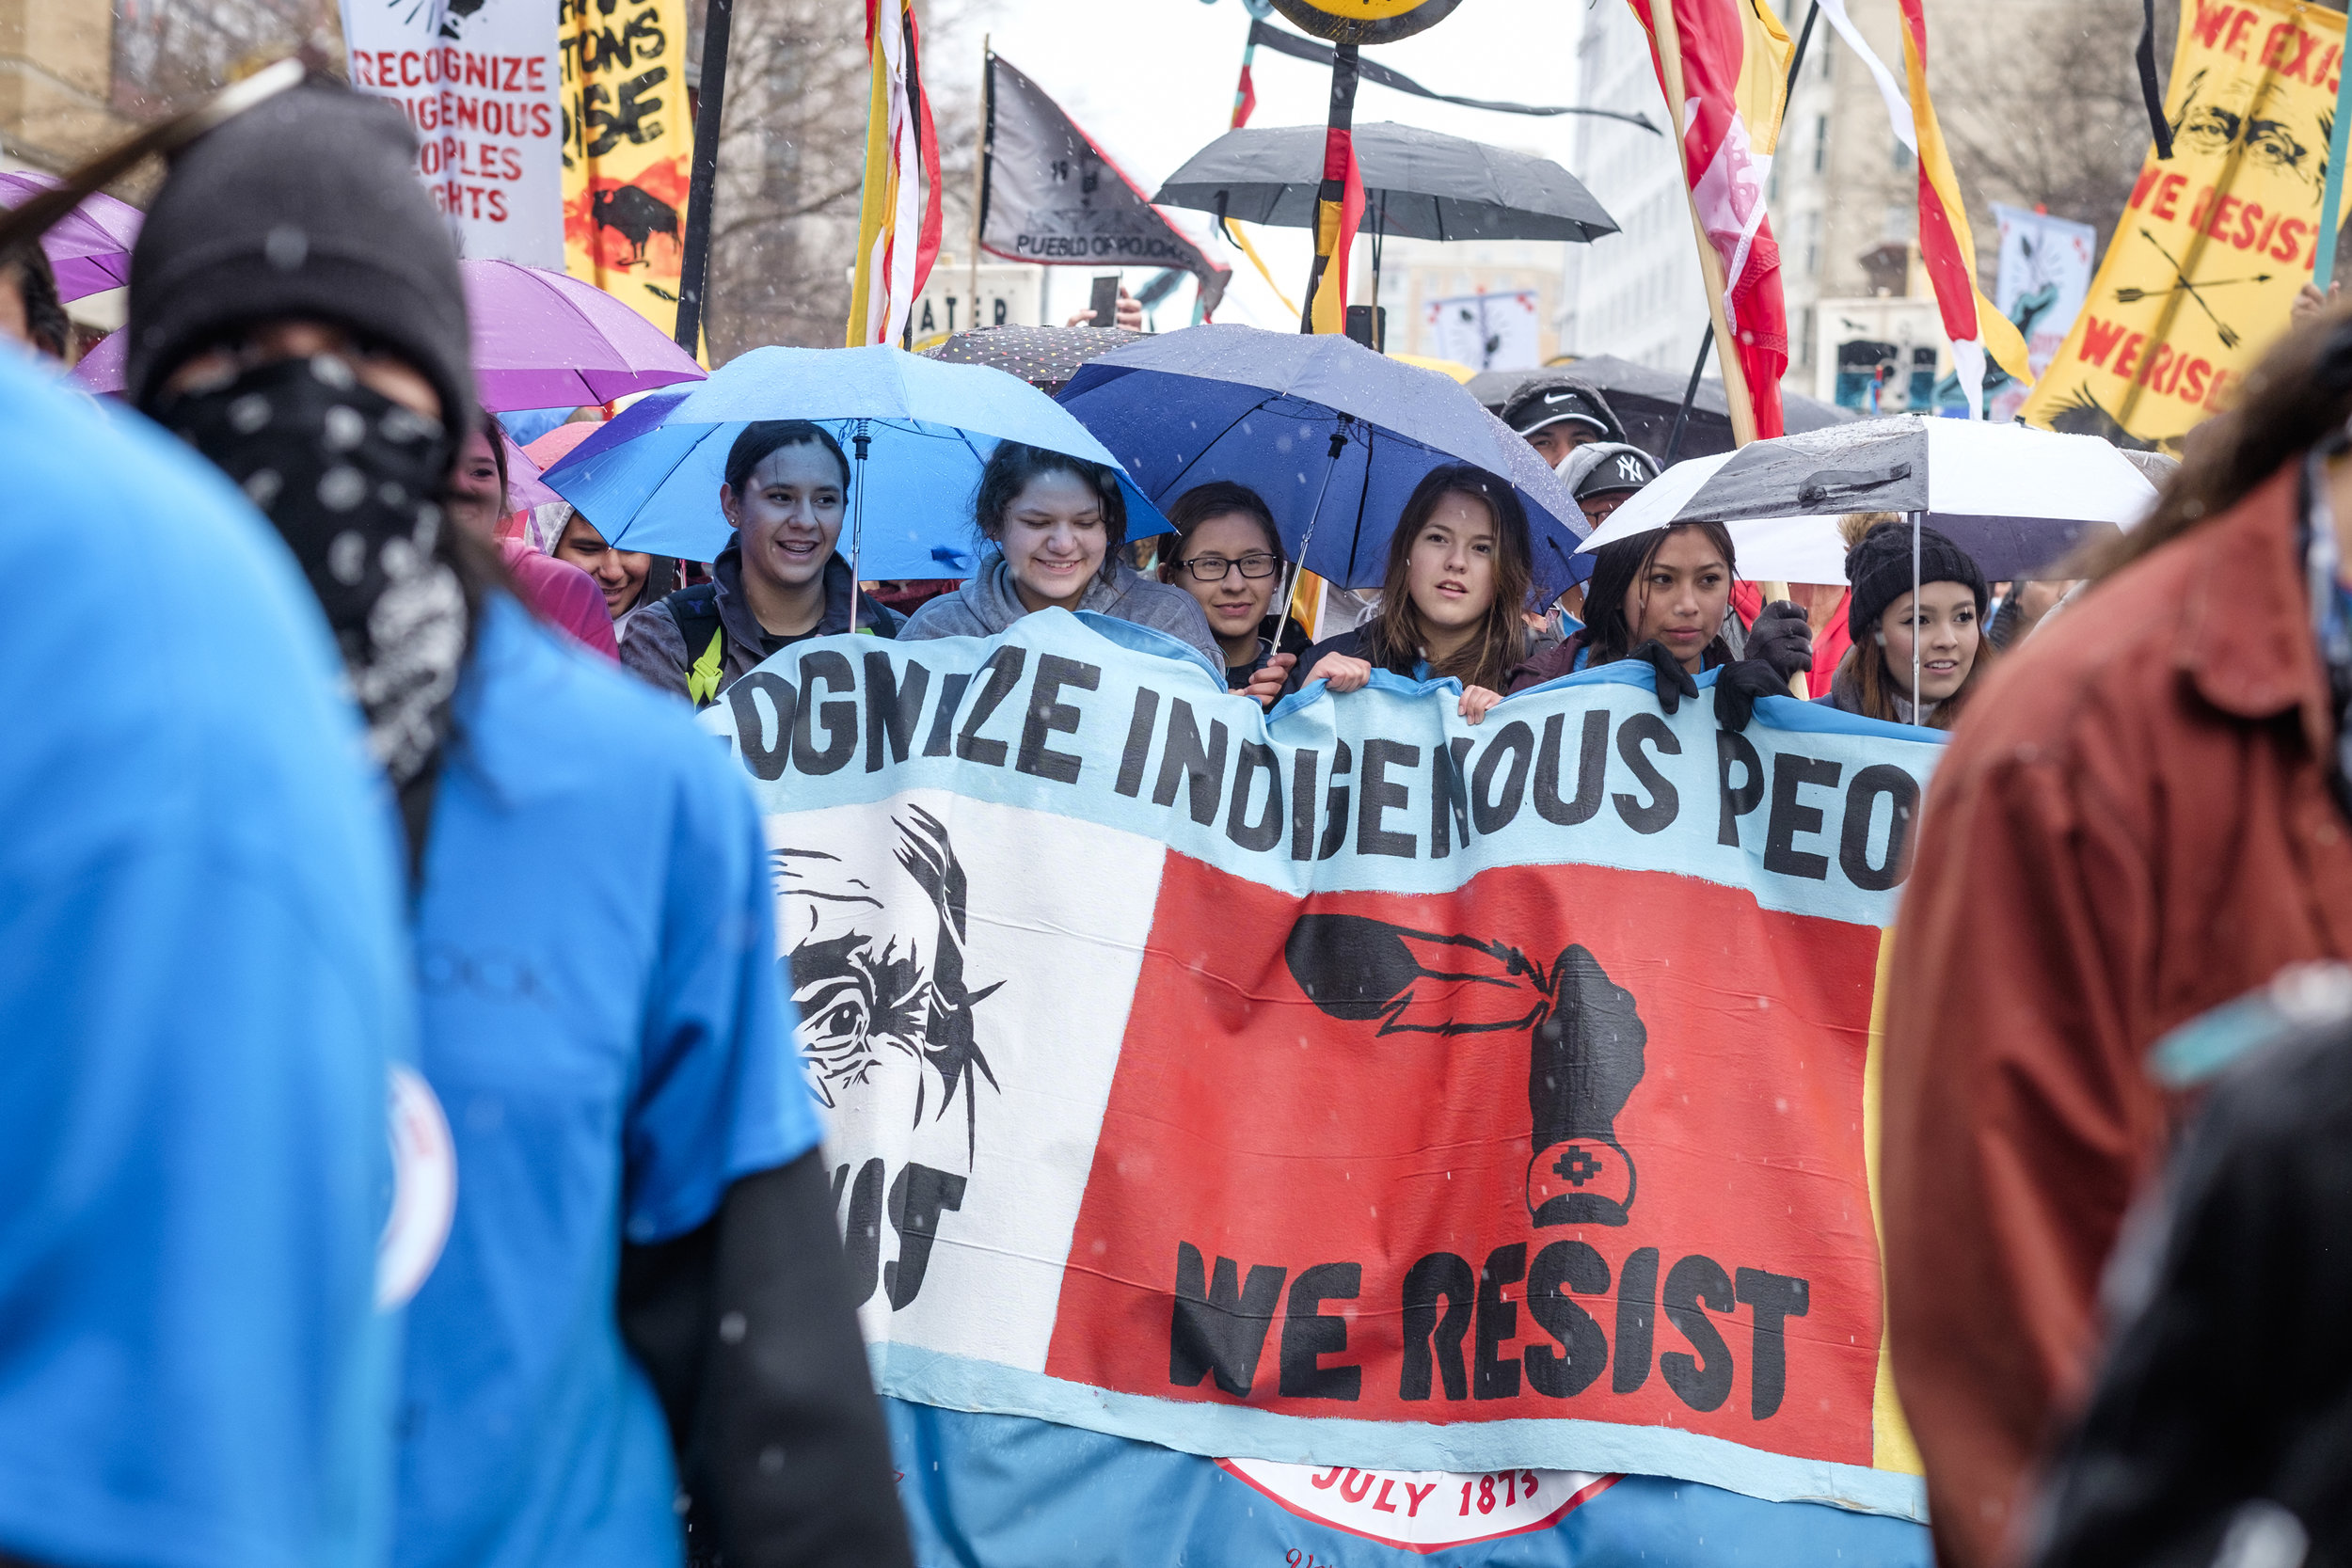 Students from the Standing Rock Sioux Tribe are seen as they lead the way at the Native Nations March in Washington, DC on Friday, March 10, 2017. The march organizers call on all peoples to stand in solidarity with indigenous rights. Indigenous Rights mean Climate Justice. Indigenous Rights protect water, air, and land. Indigenous Rights go hand in hand with improved human rights for black and brown communities.